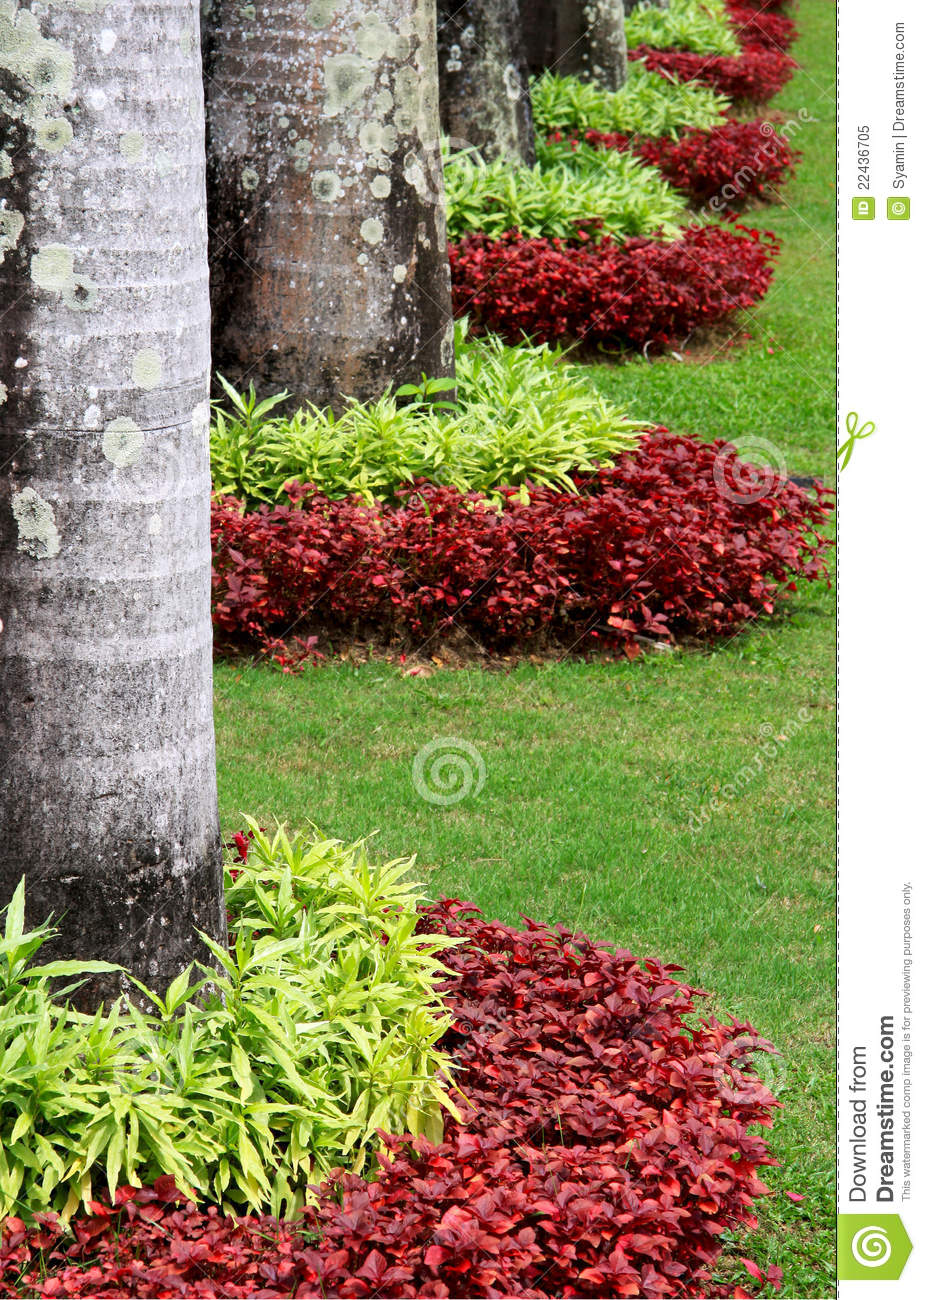 Decorating plant garden royalty free stock photo image - Plants used for decoration ...